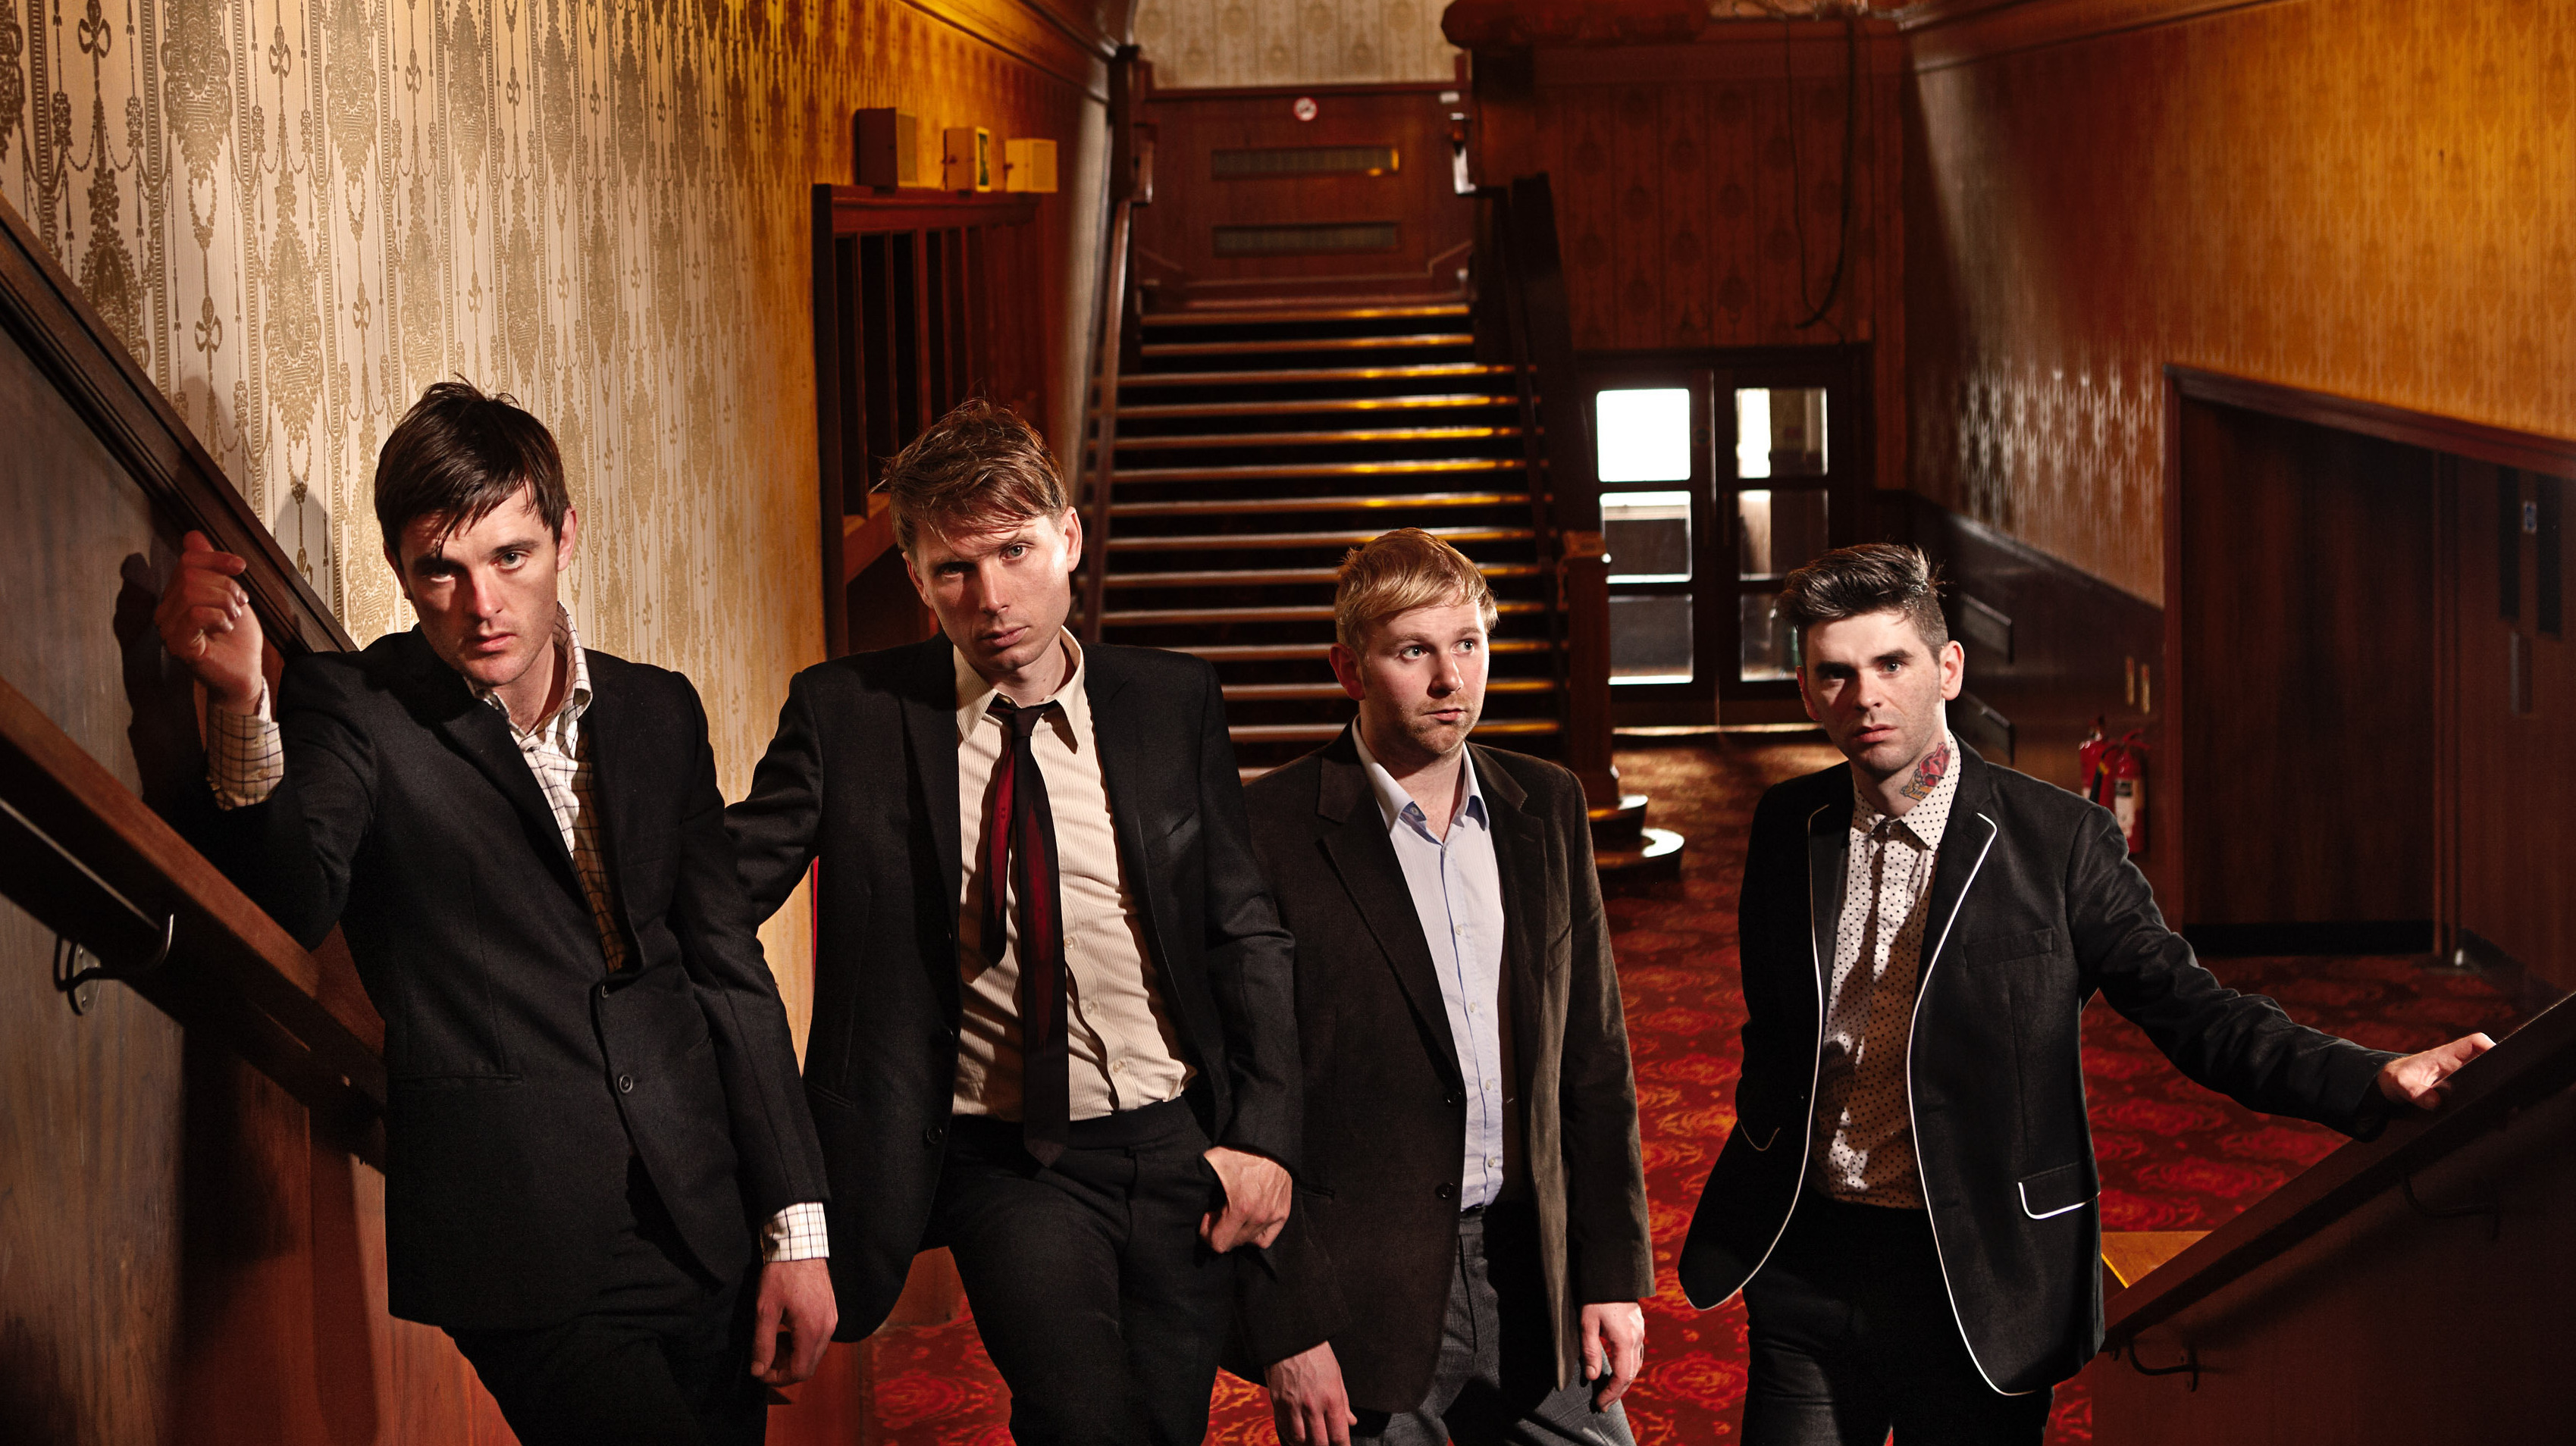 Tonight at 9: Franz Ferdinand on FUV Live.